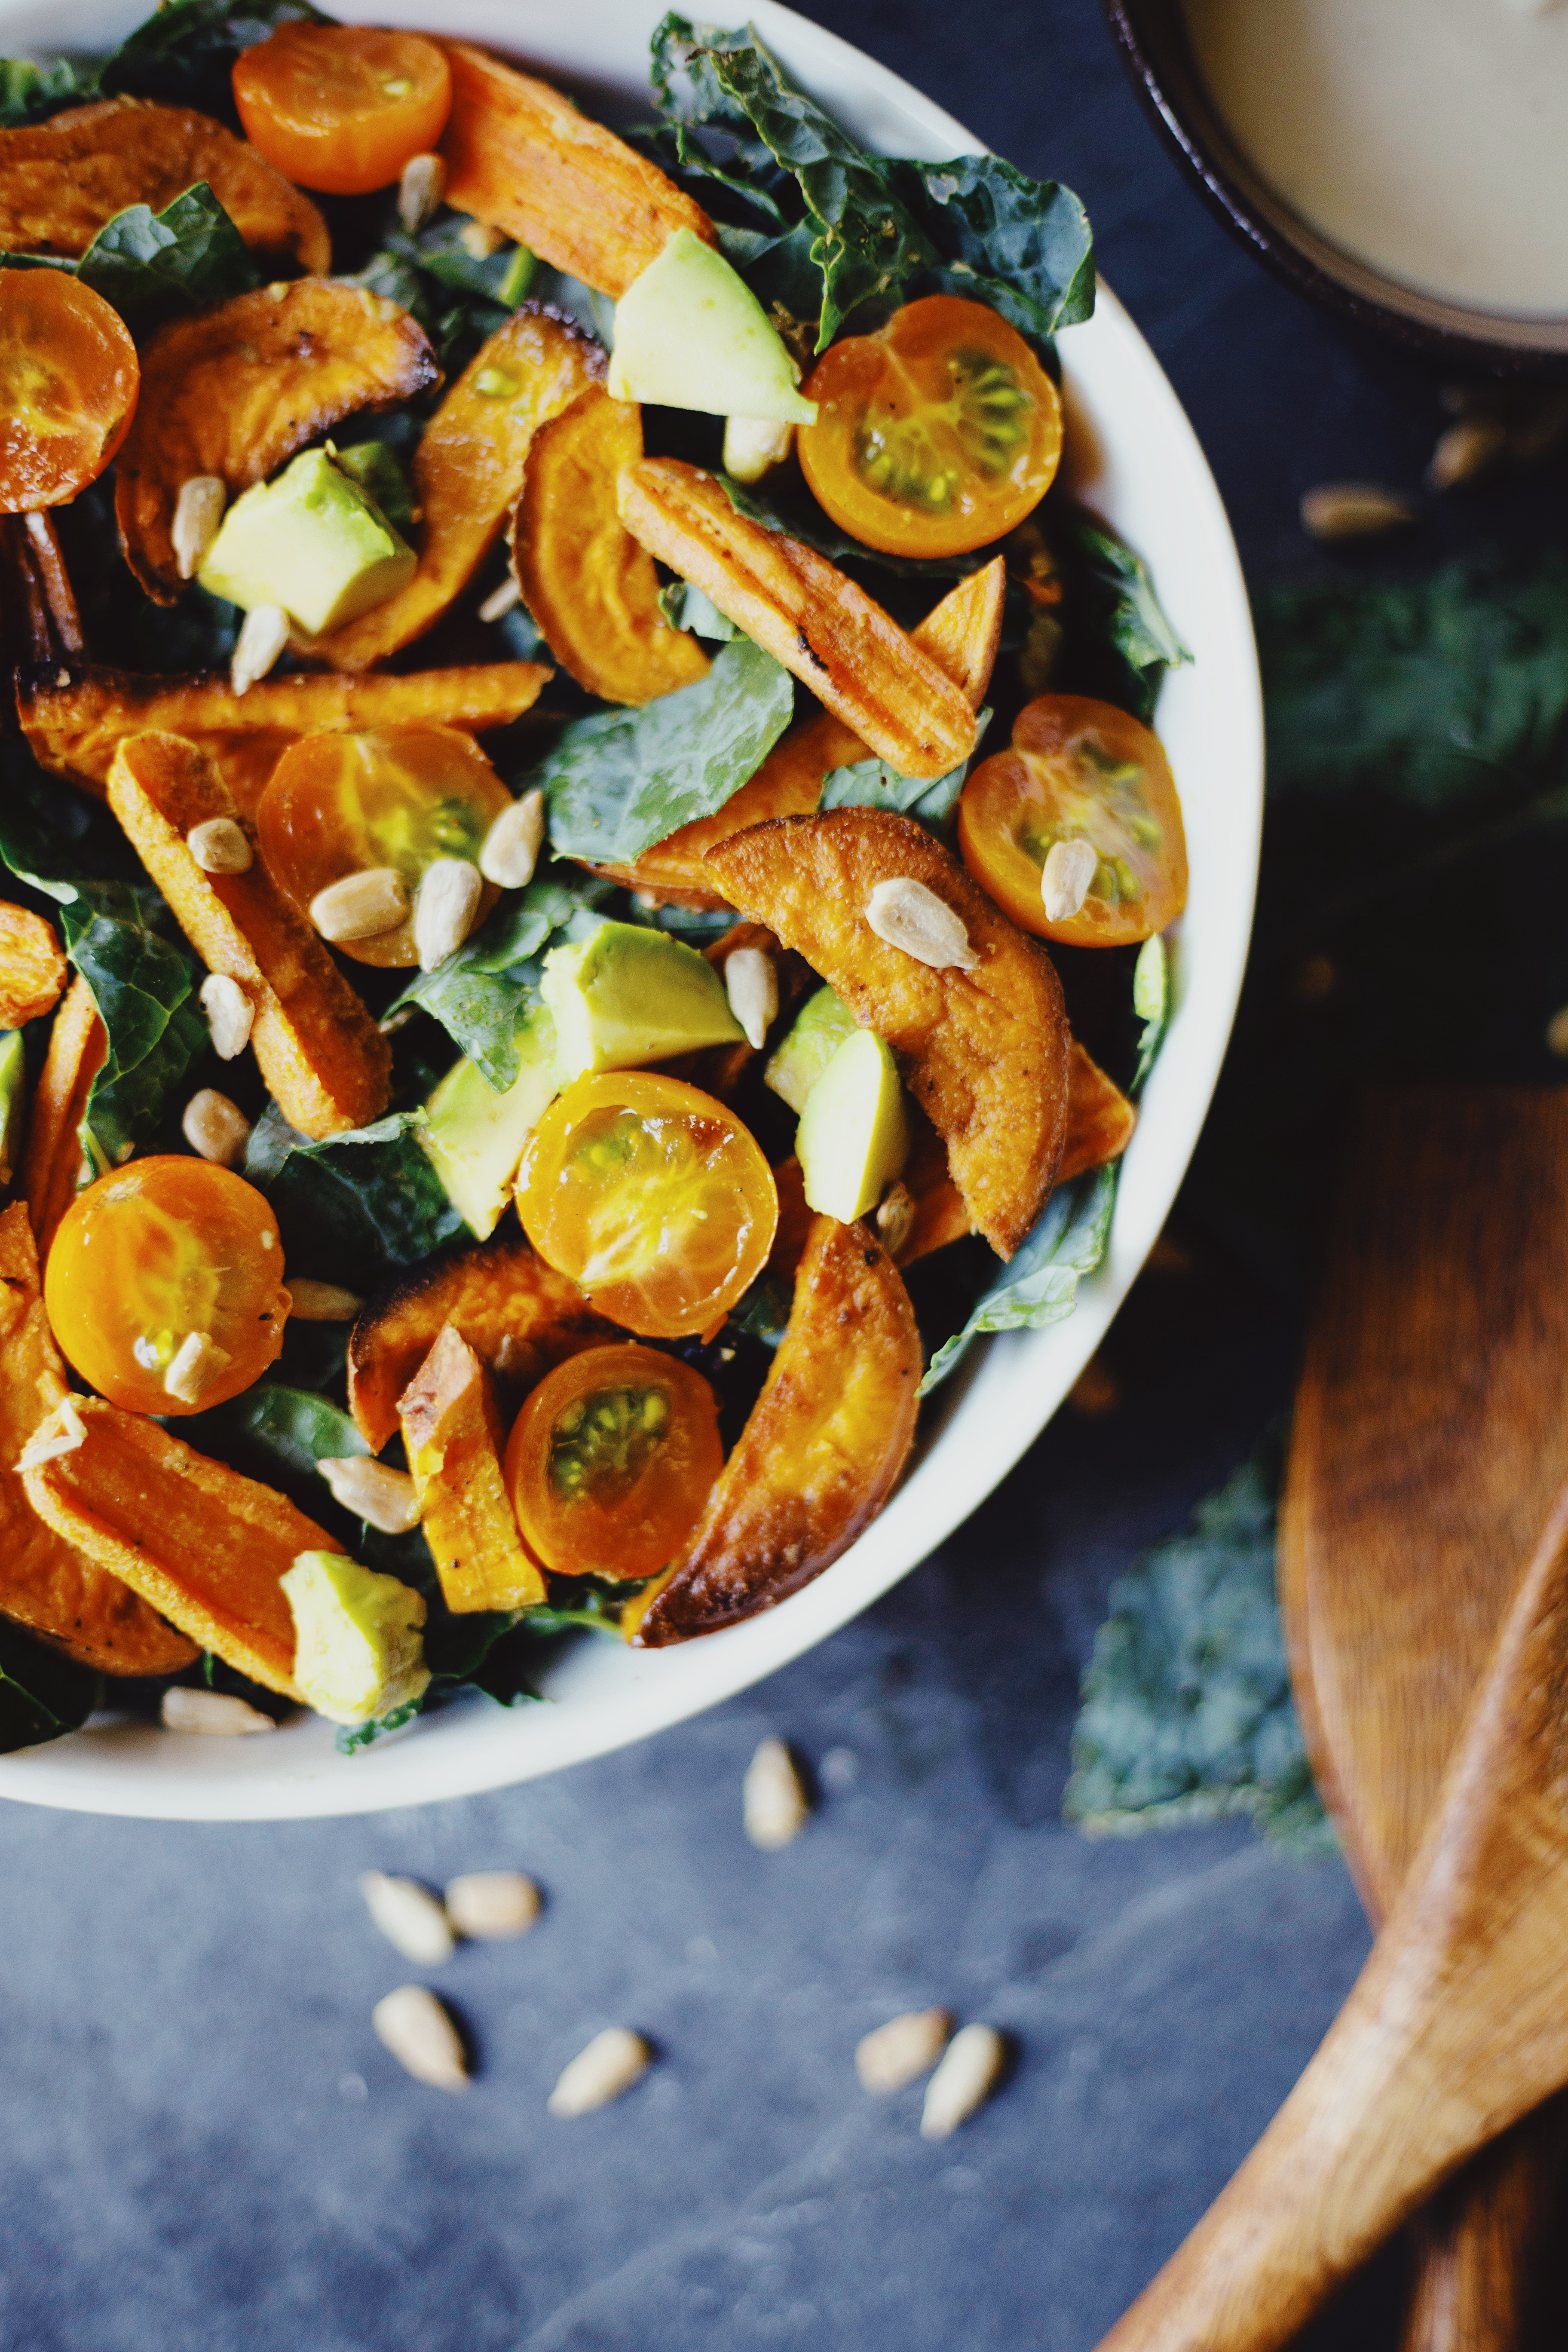 Late Summer Salad with Tahini Dressing Recipe by Local Sprout. Healthy vegan and gluten free salad recipe by The Local Sprout